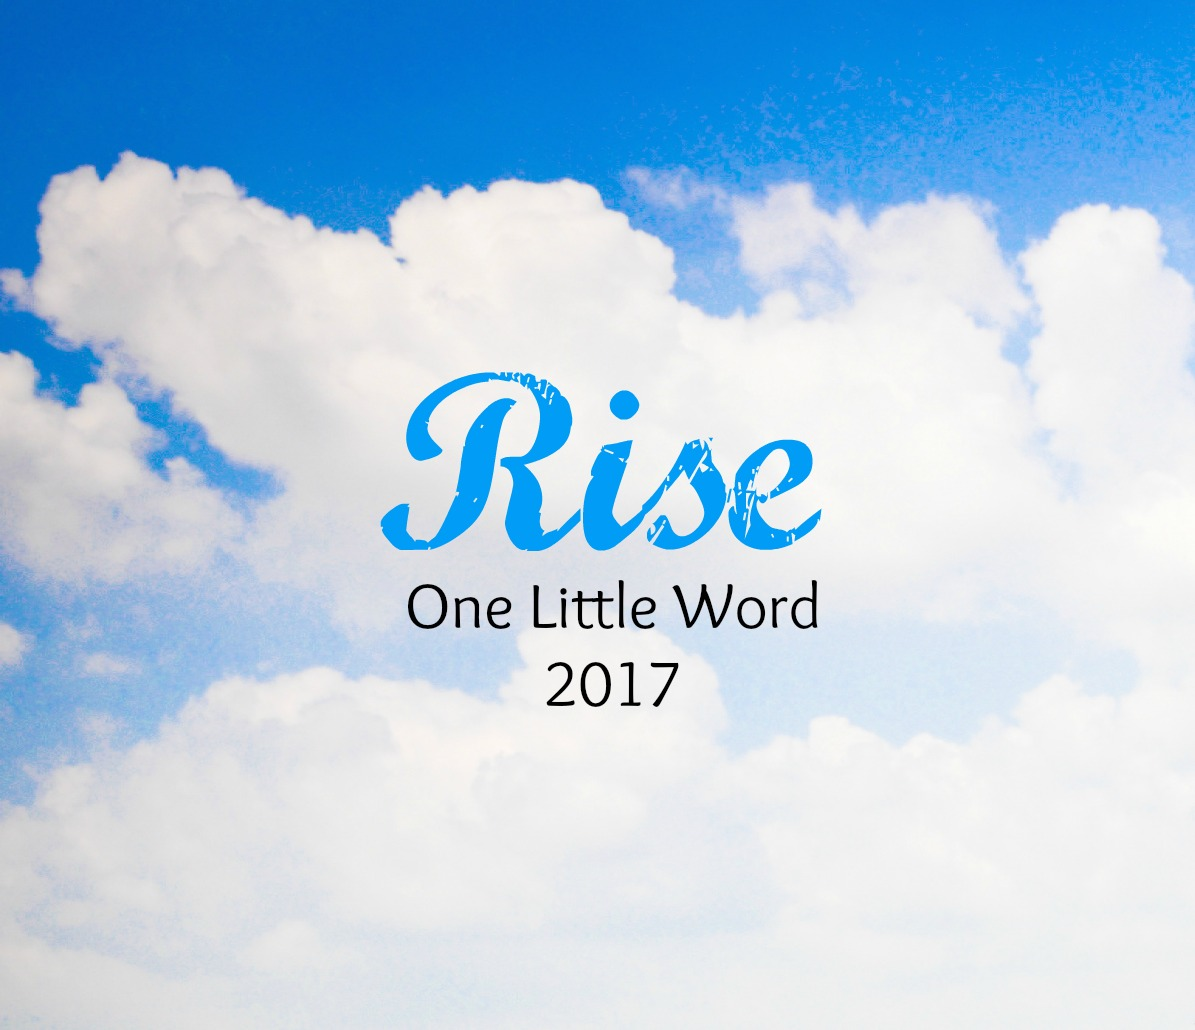 One Little Word 2017